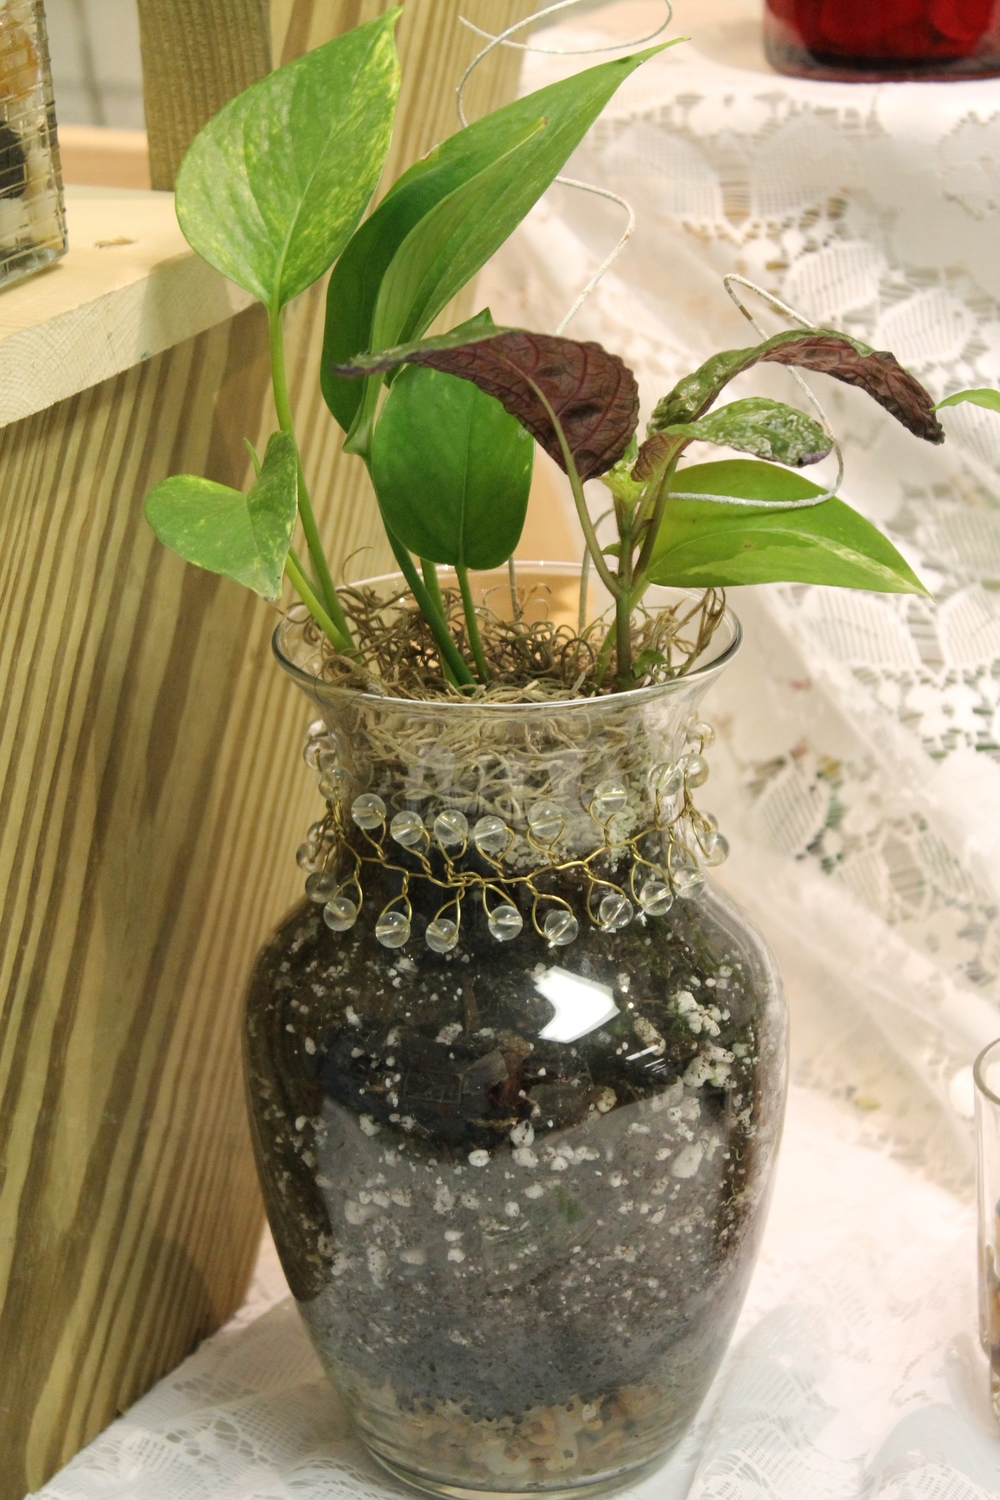 houseplants can improve indoor air quality